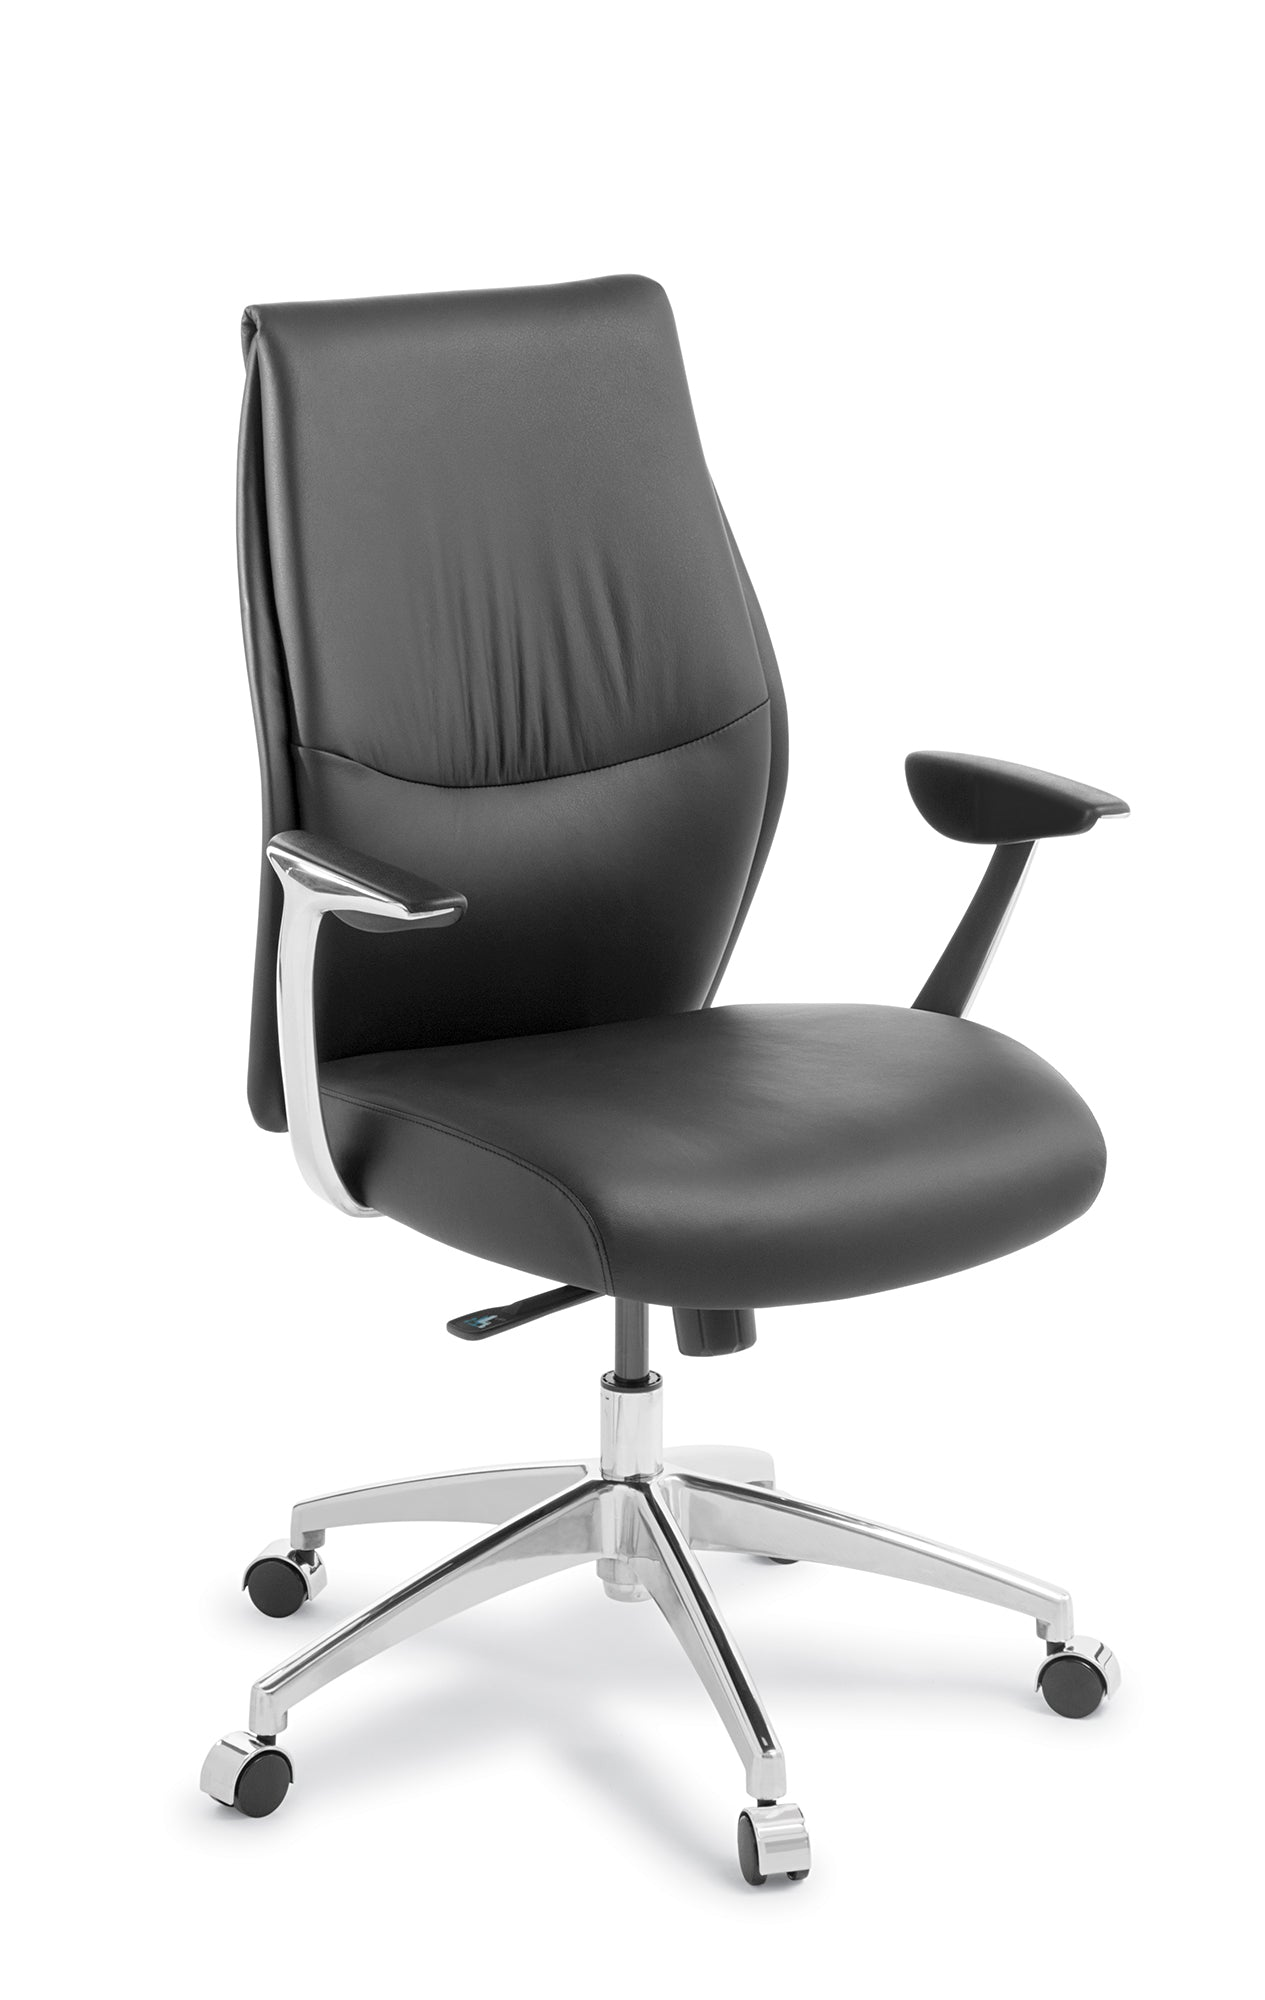 Boardroom executive chair